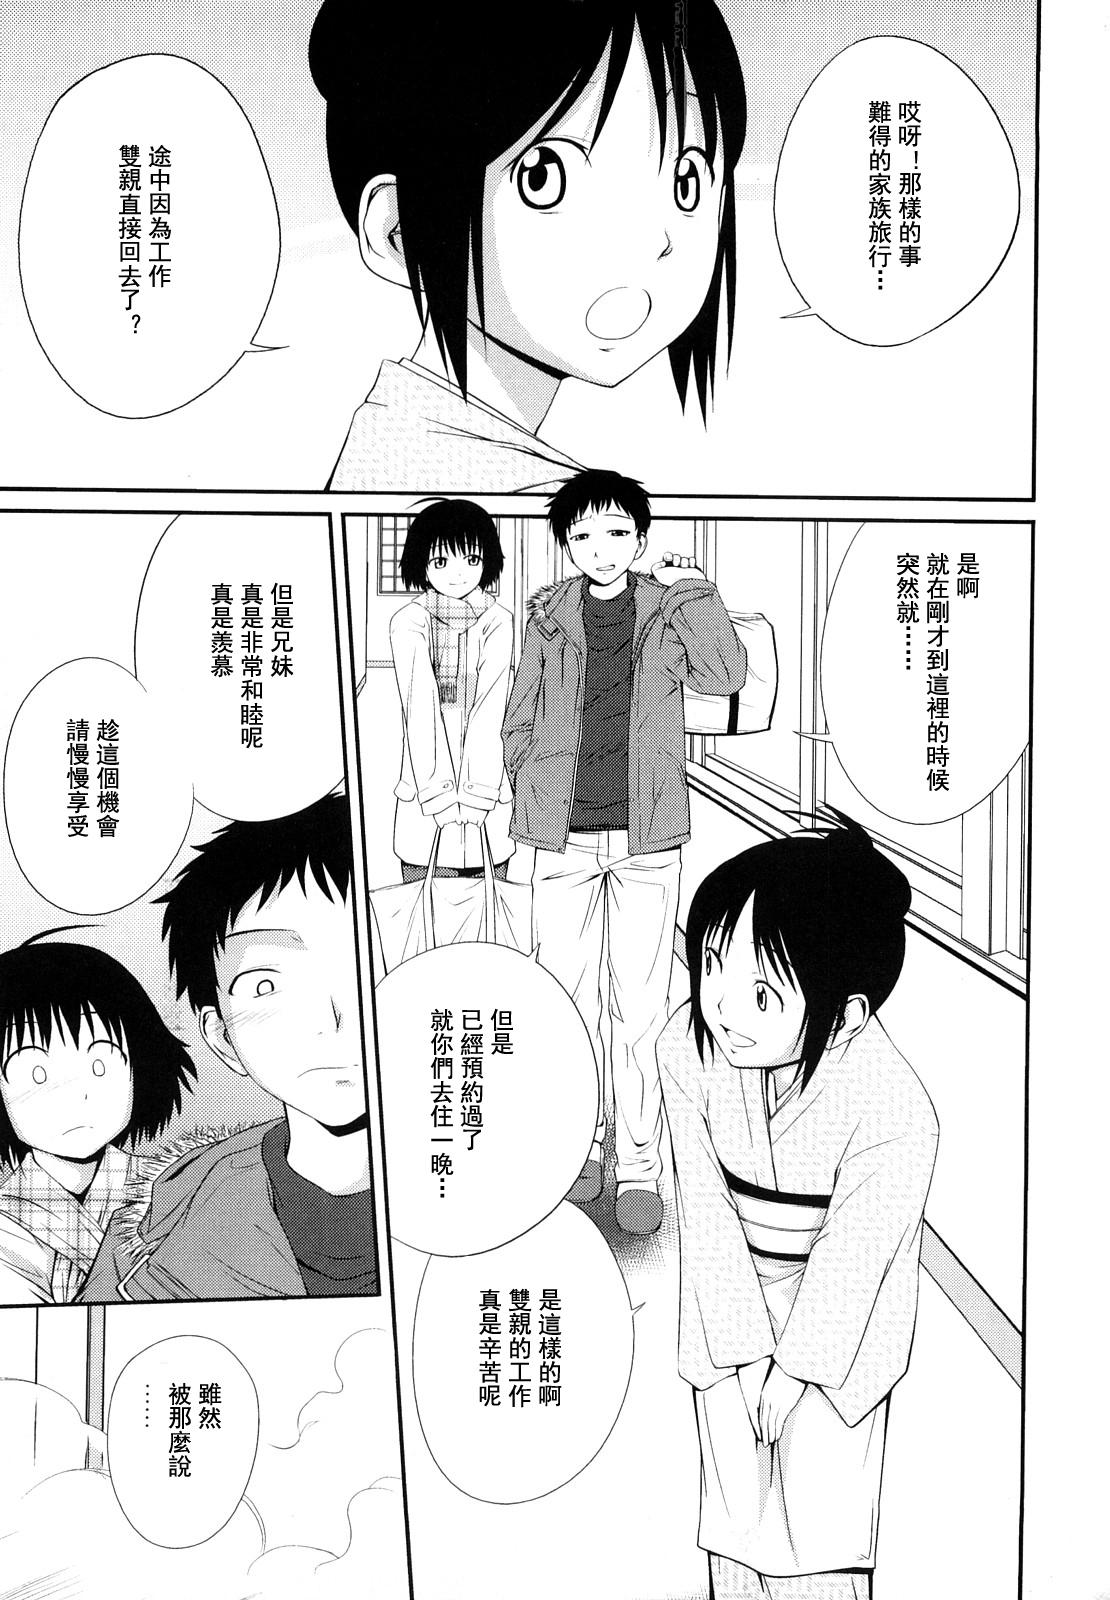 Sister Mix Ch. 1-3 7